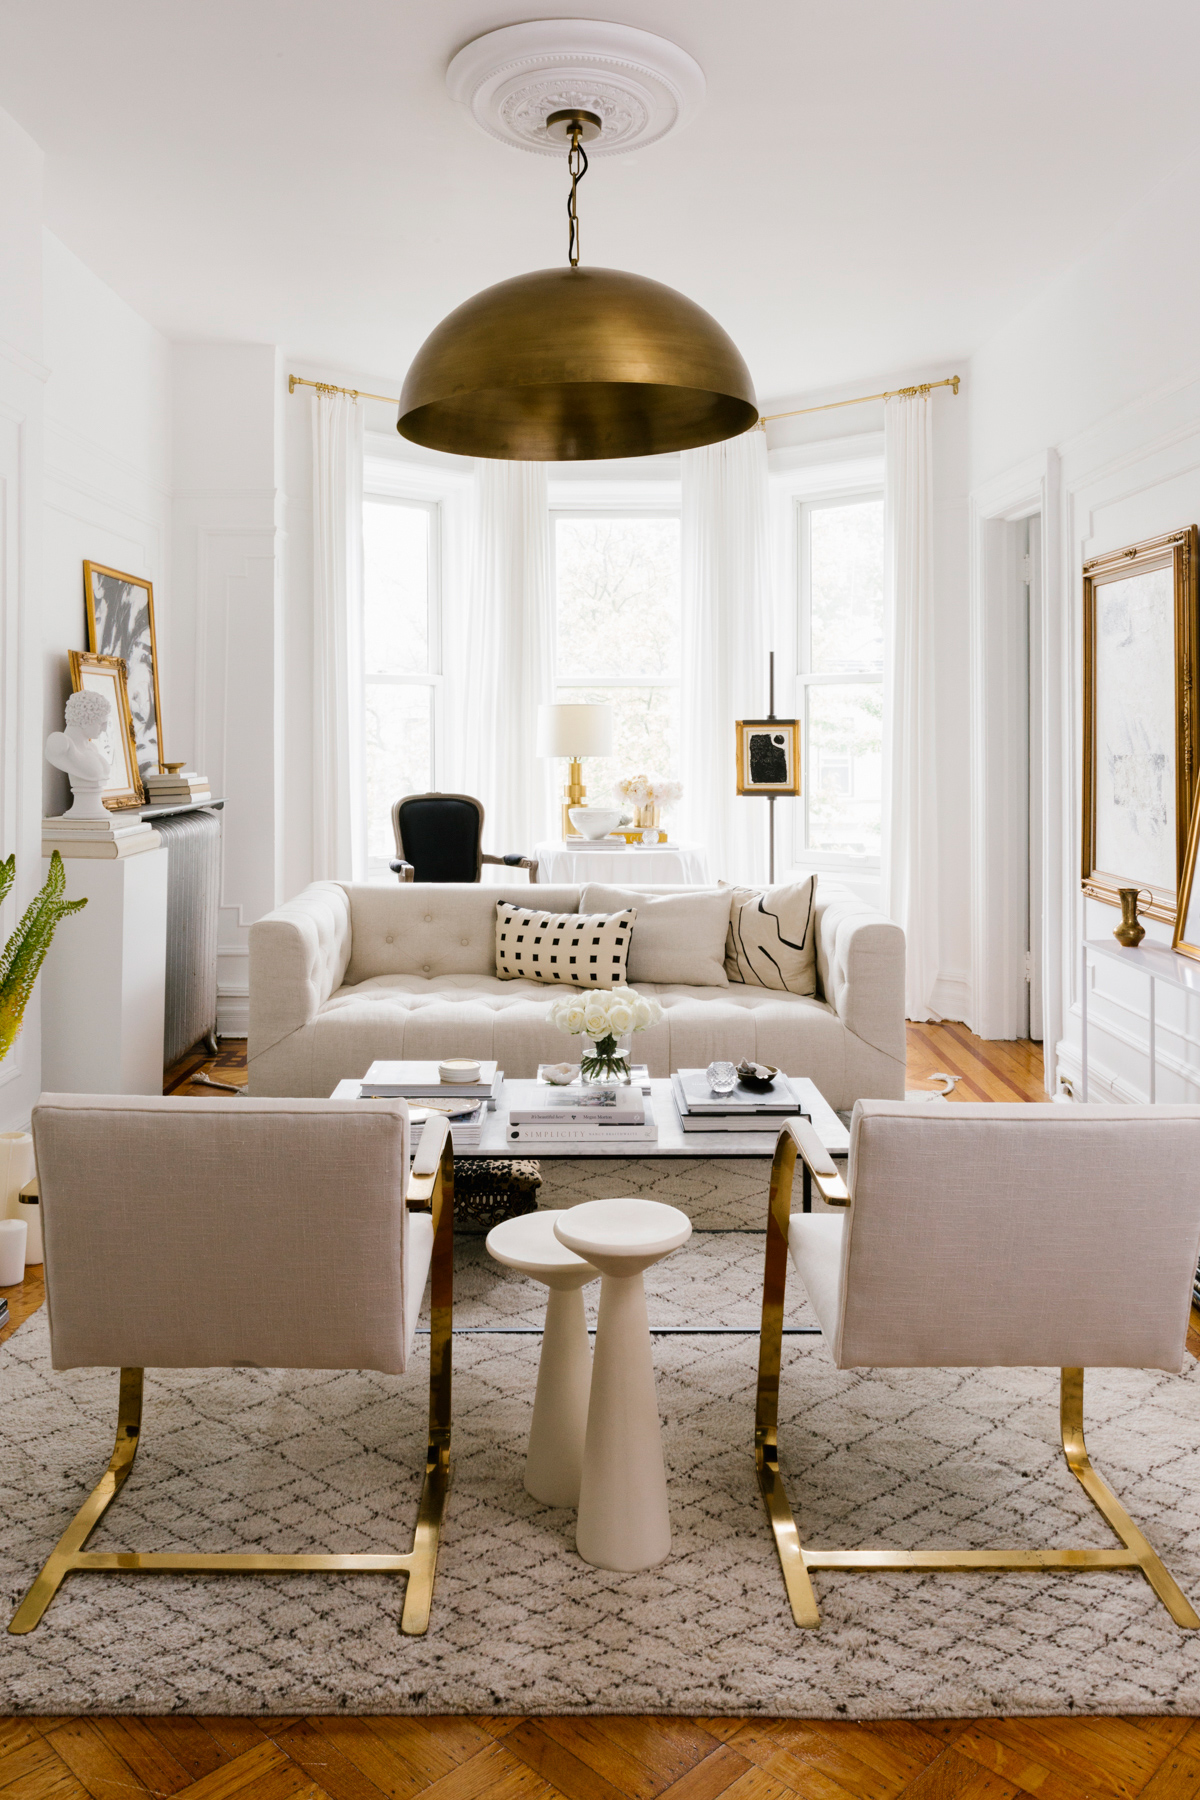 shelby nyc apartment neutral colors living room